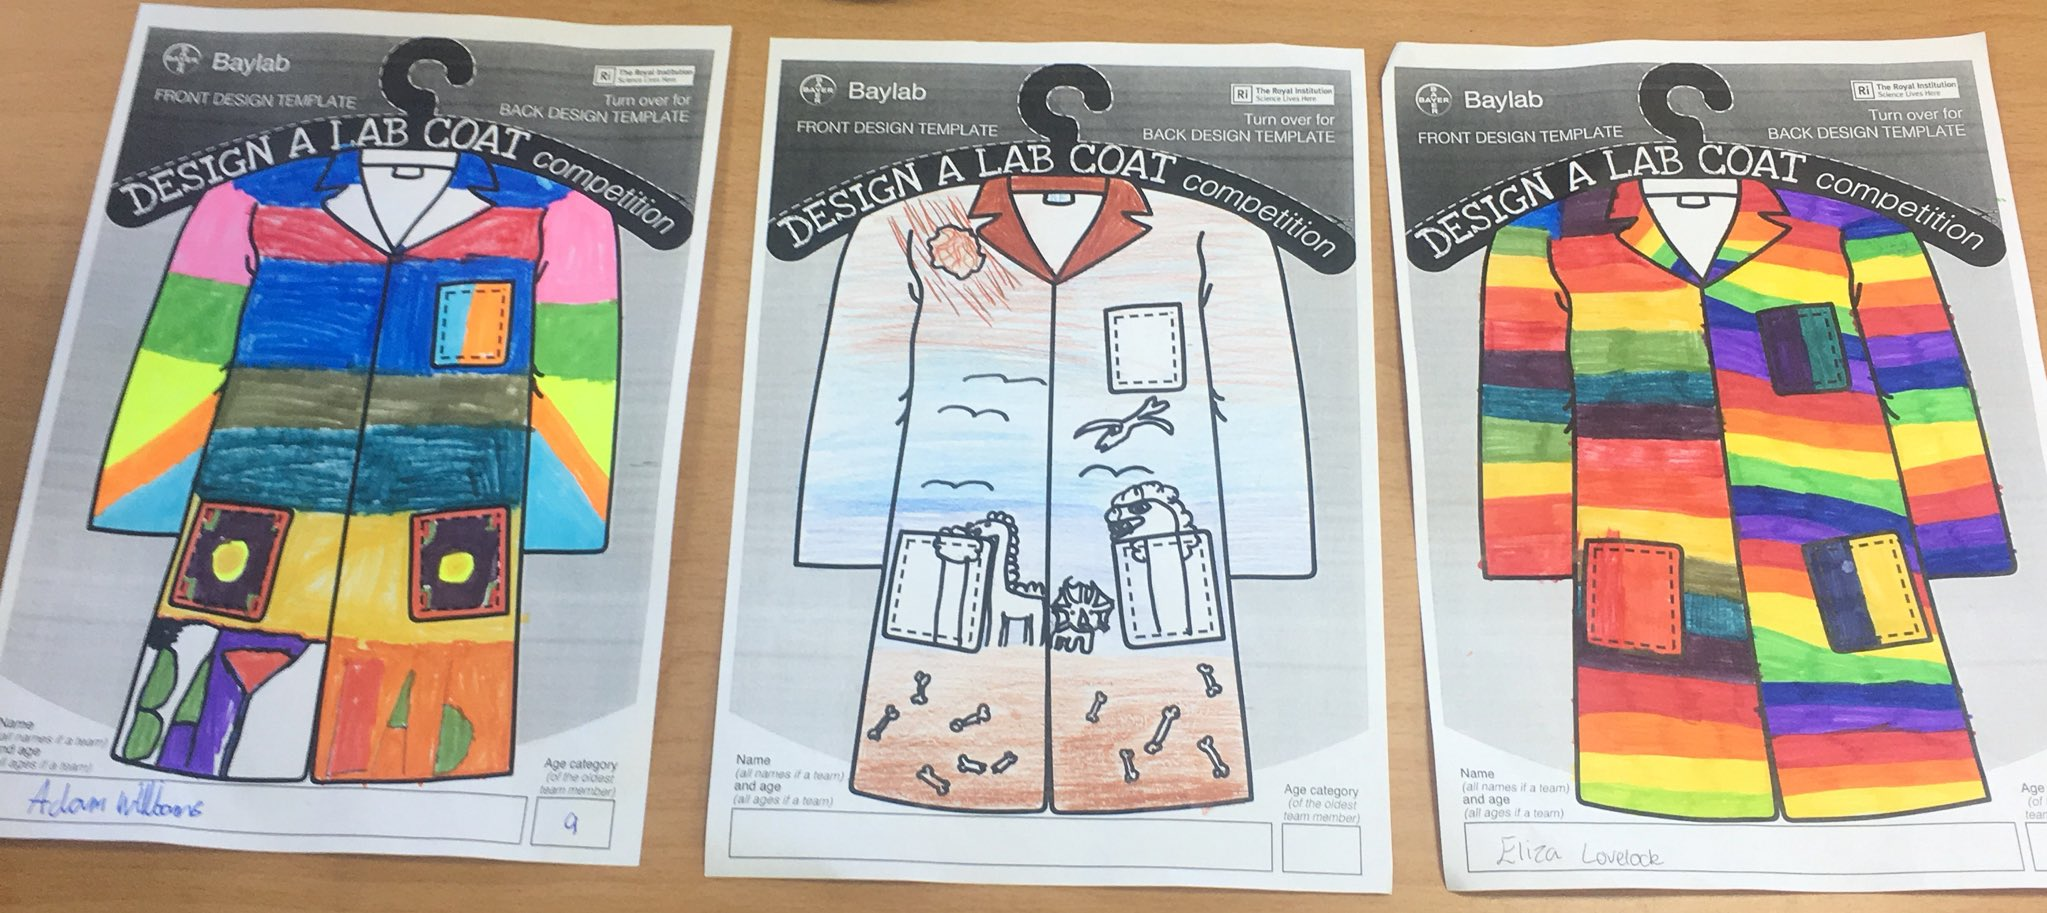 Nine Mile Ride On Twitter Design A Lab Coat Entries For Our Science Day Baylab